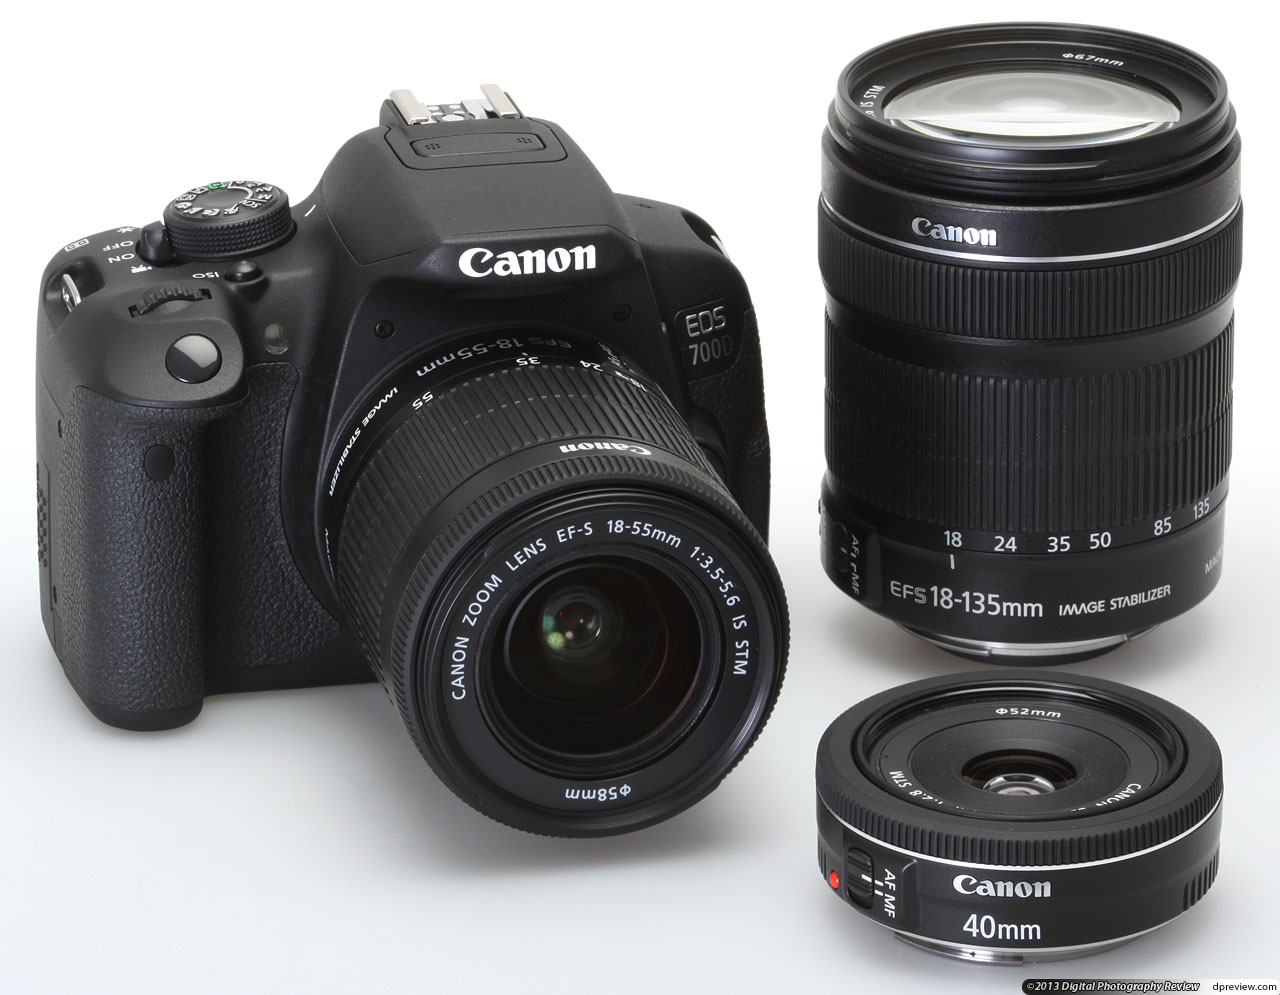 Canon EOS 700D/Rebel T5i In-Depth Review: Digital ...